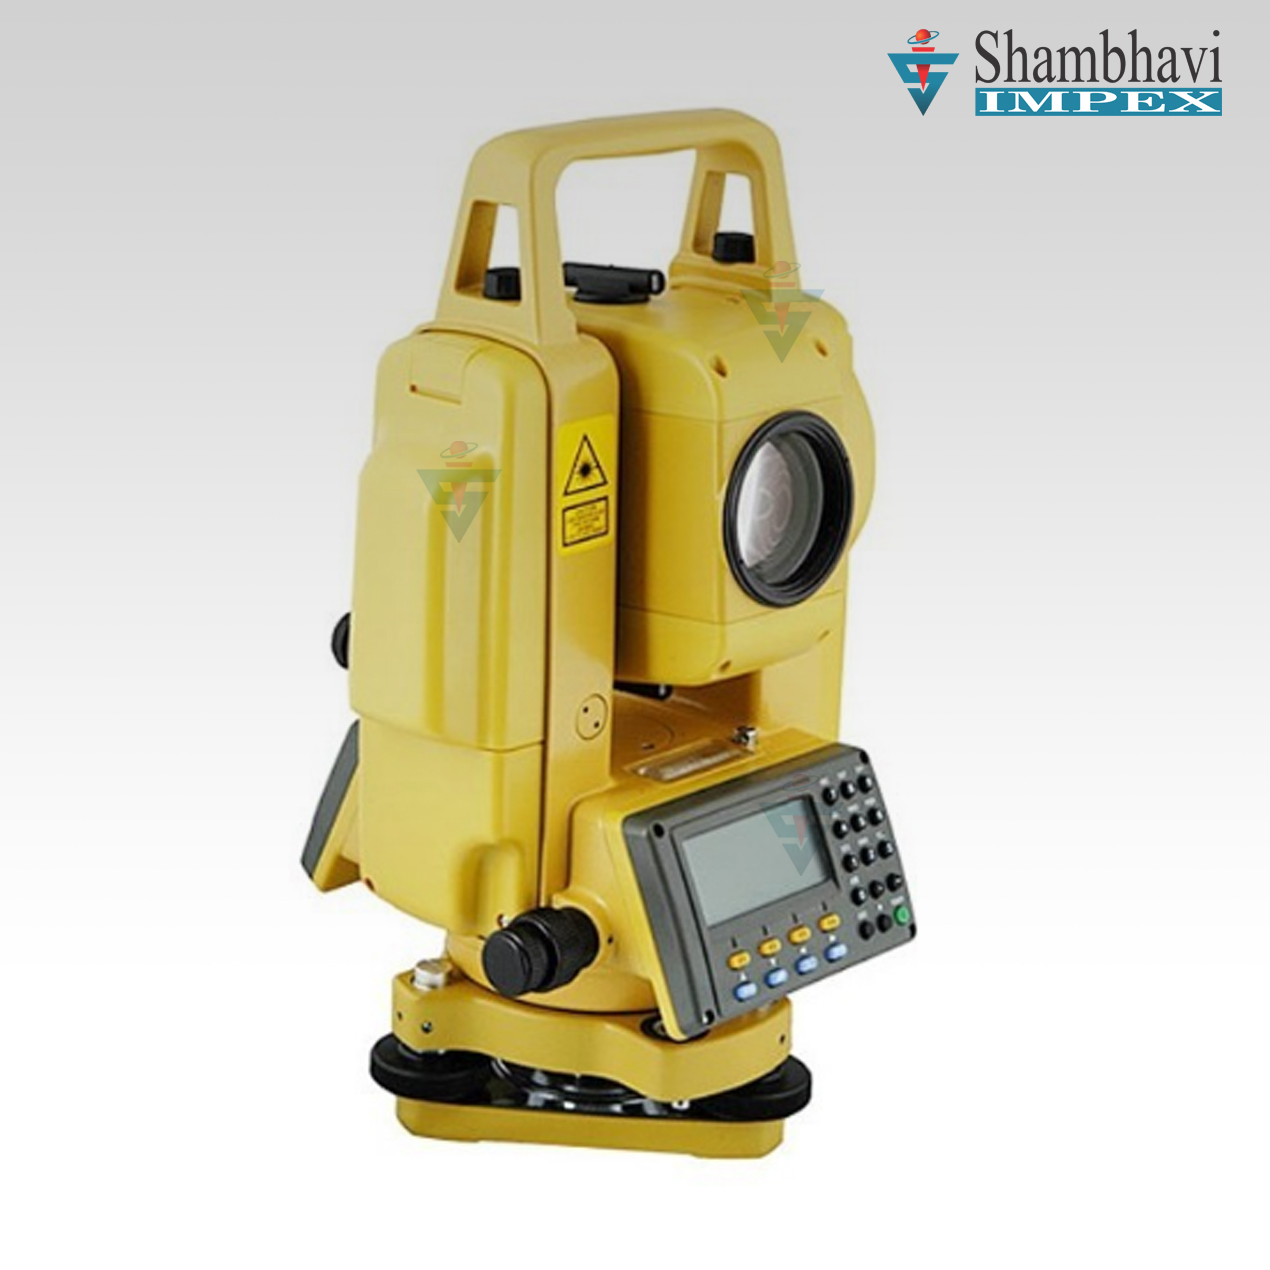 NTS-350/350R Series Total Station